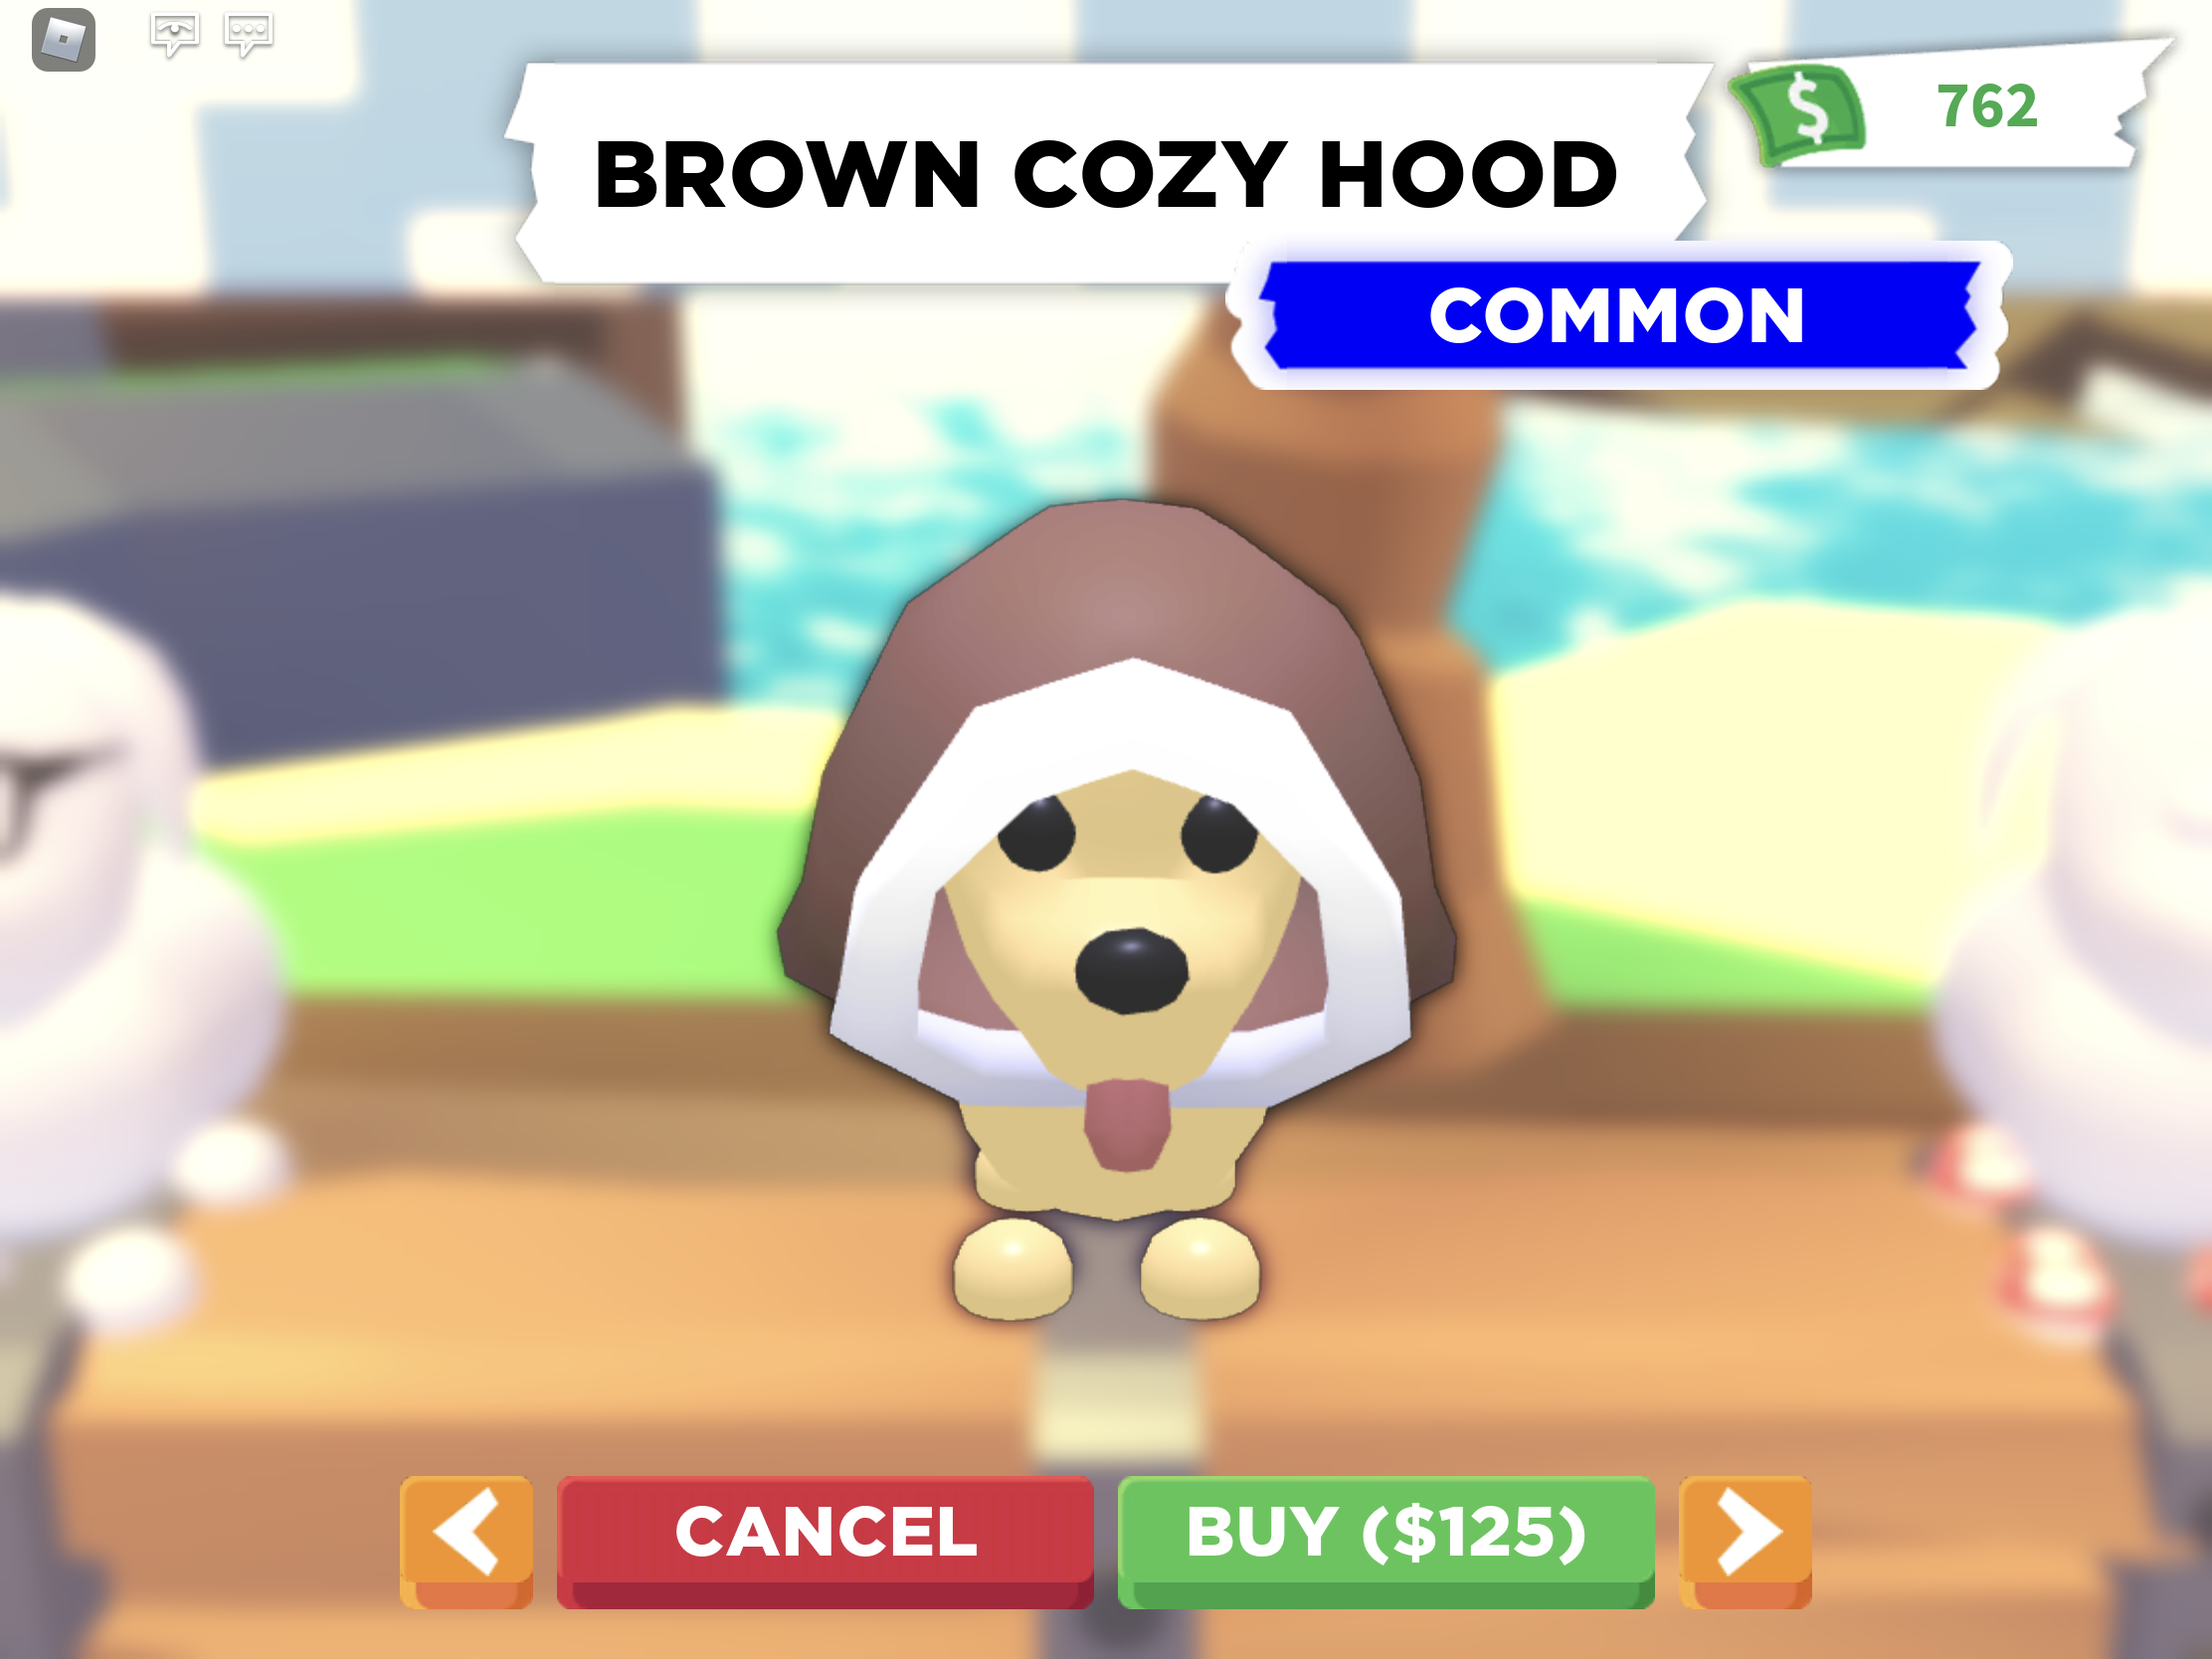 Brown Cozy Hood